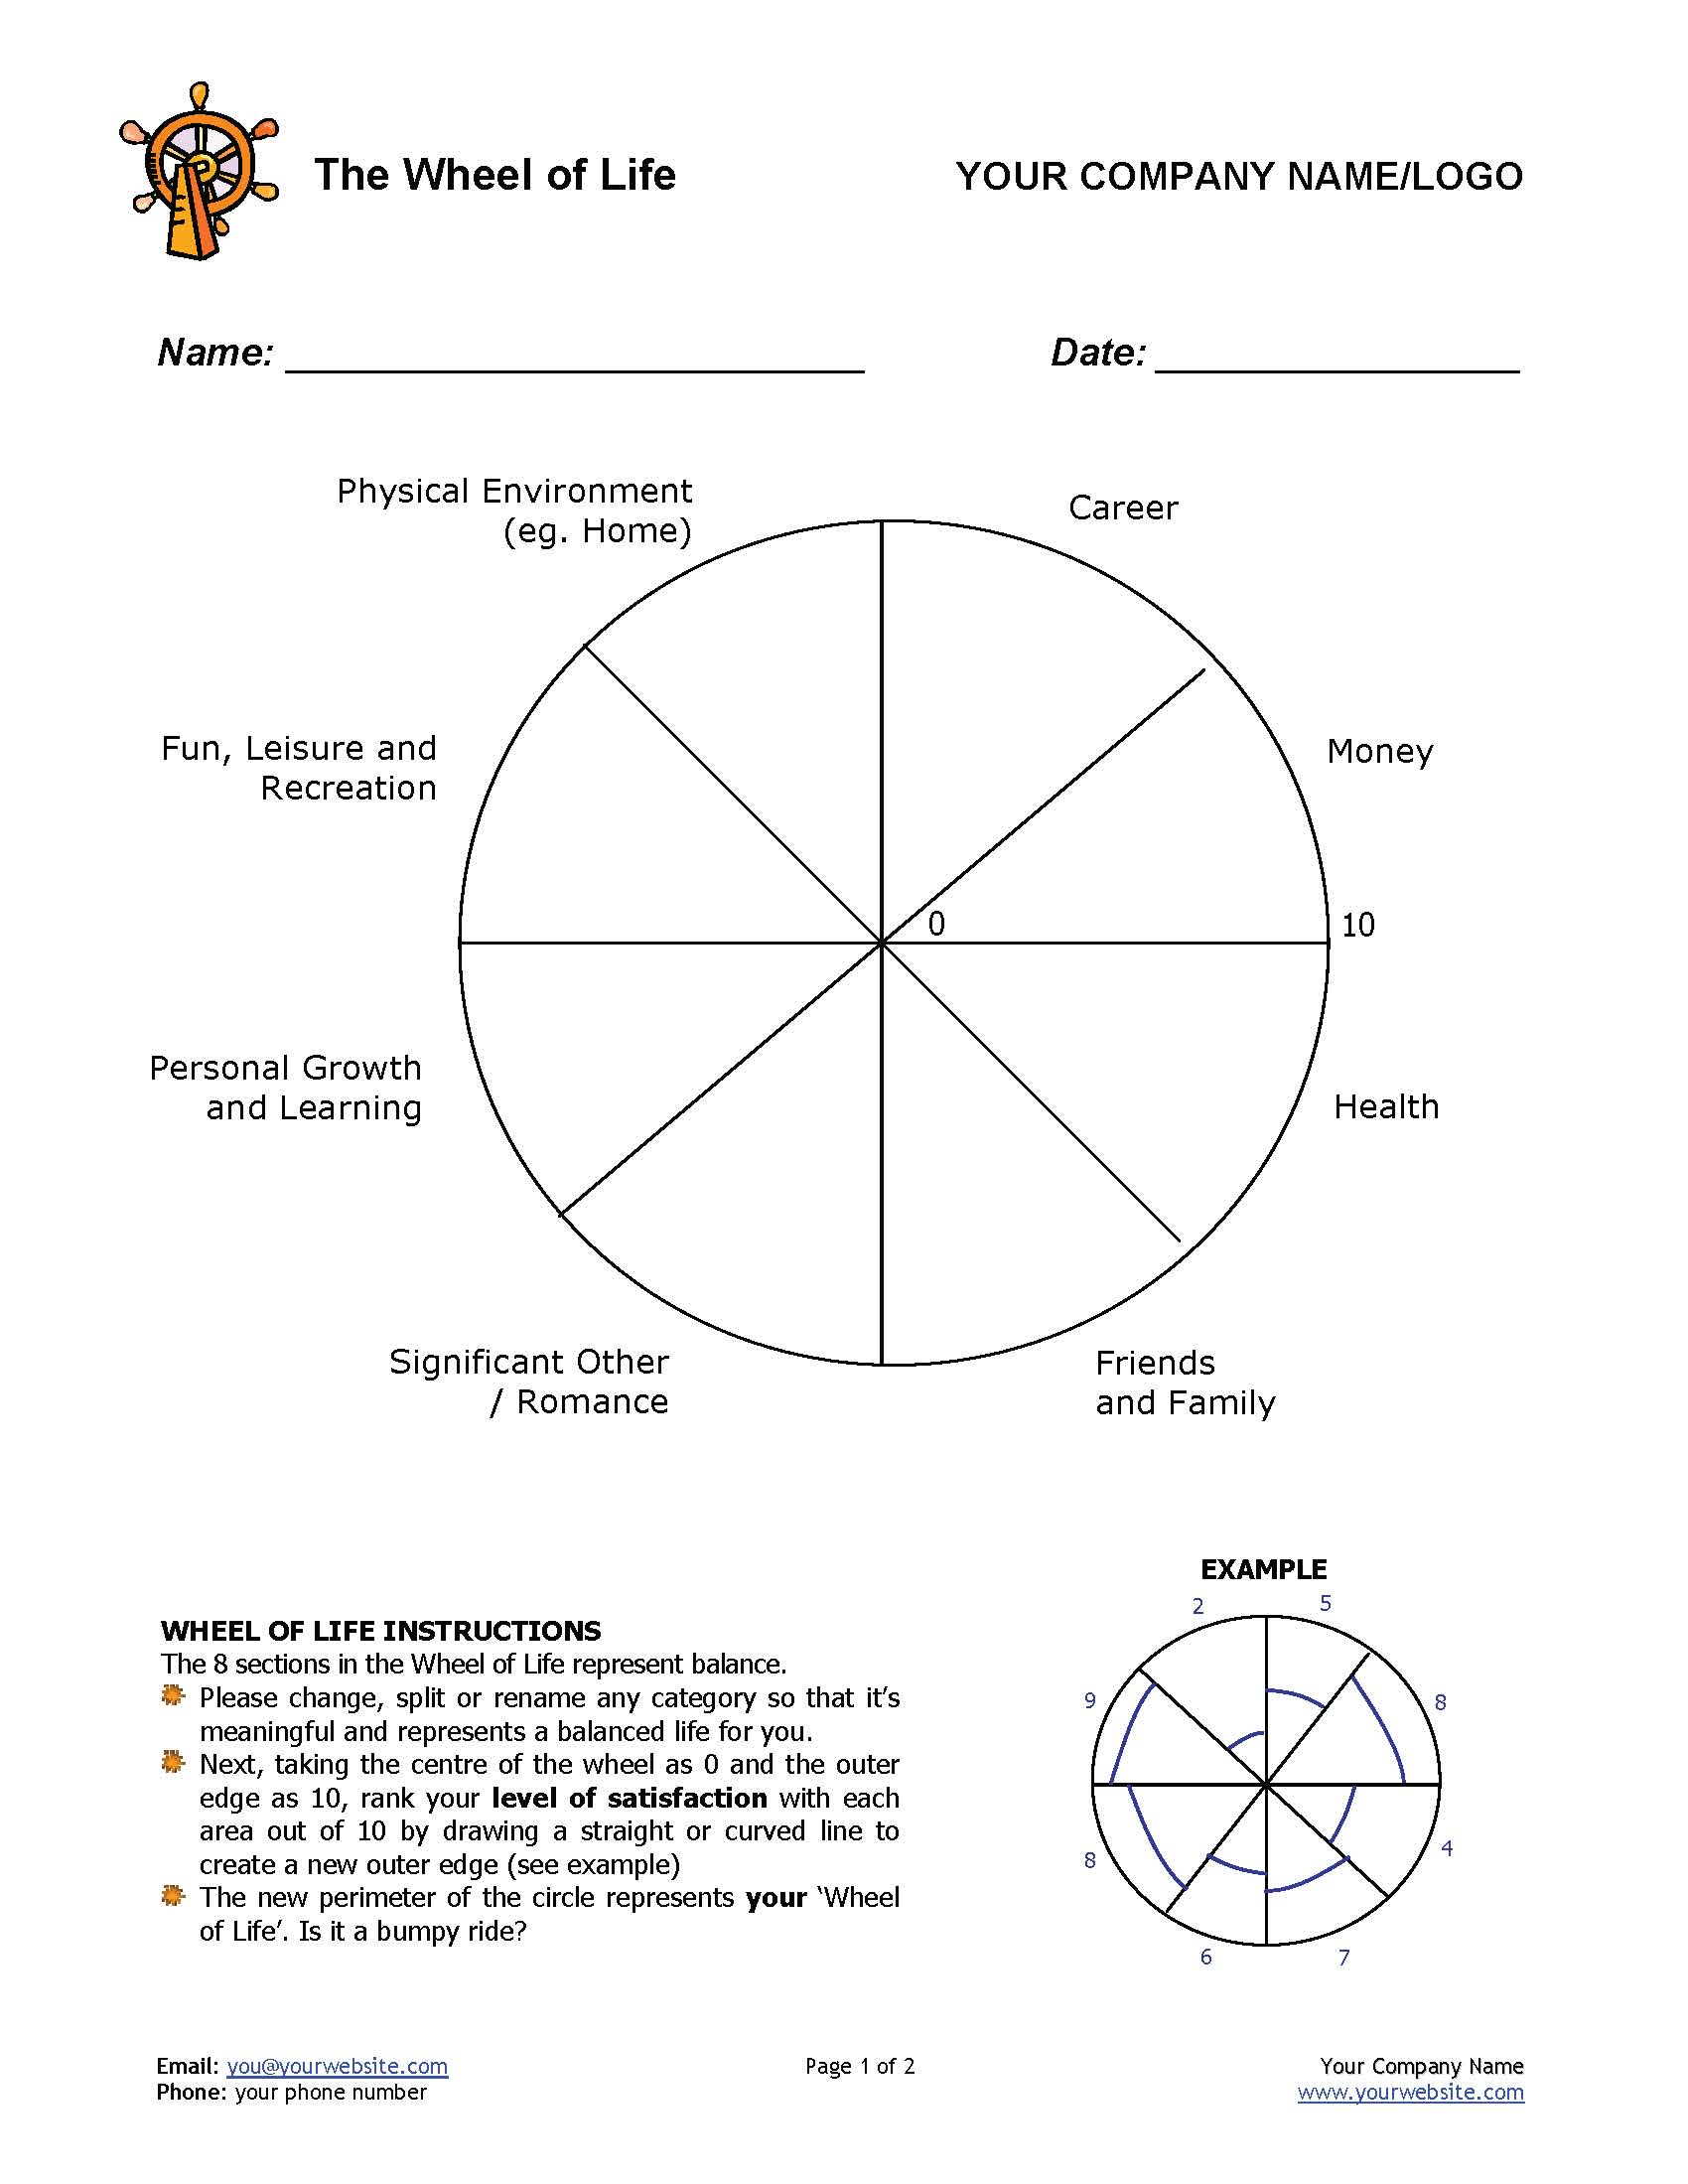 12 Awesome New Ways To Use The Wheel Of Life Tool In Your Coaching Practice